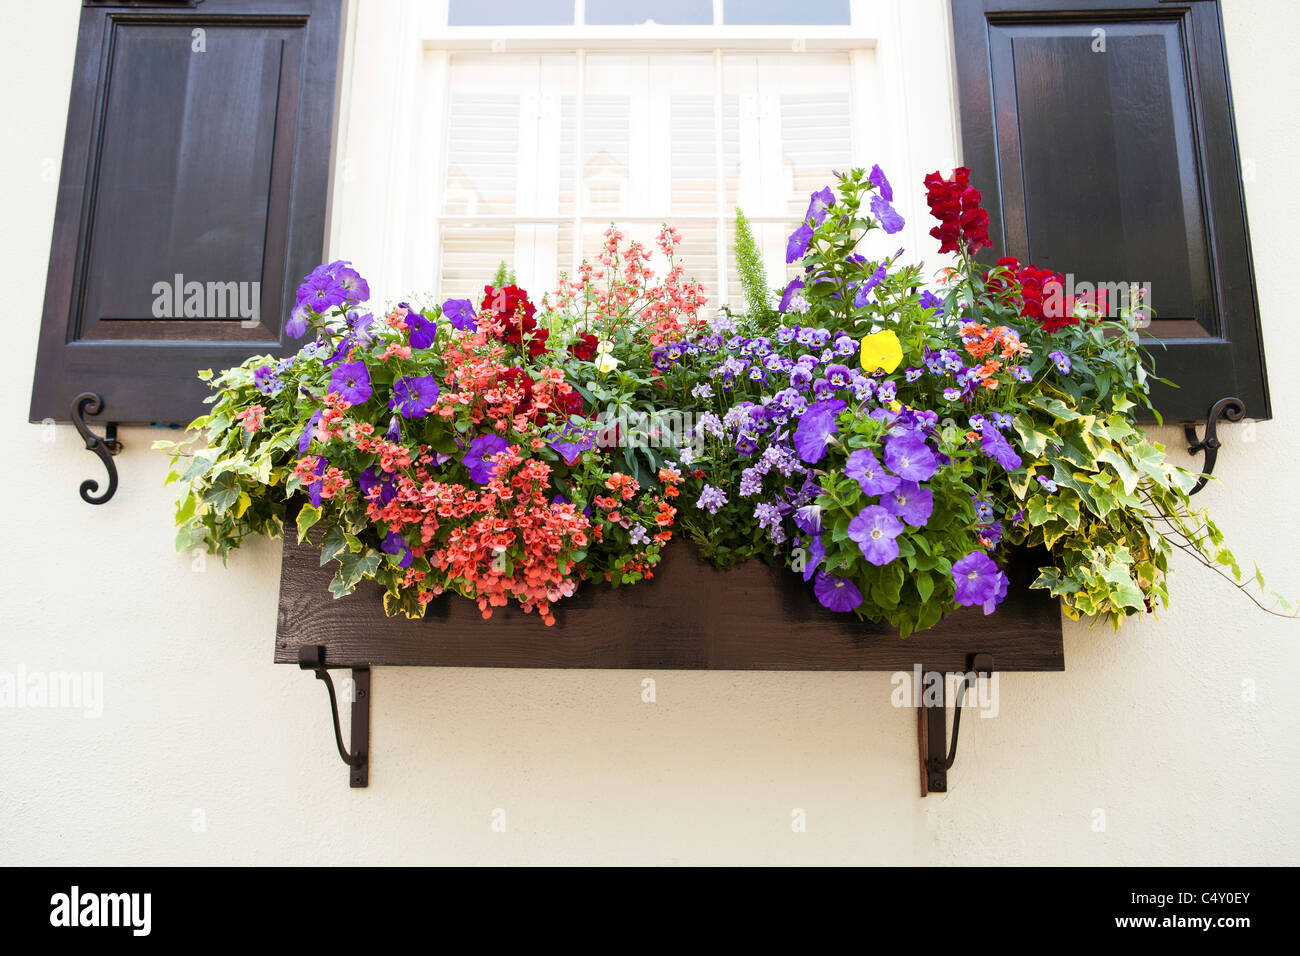 photos of flowers in window boxes